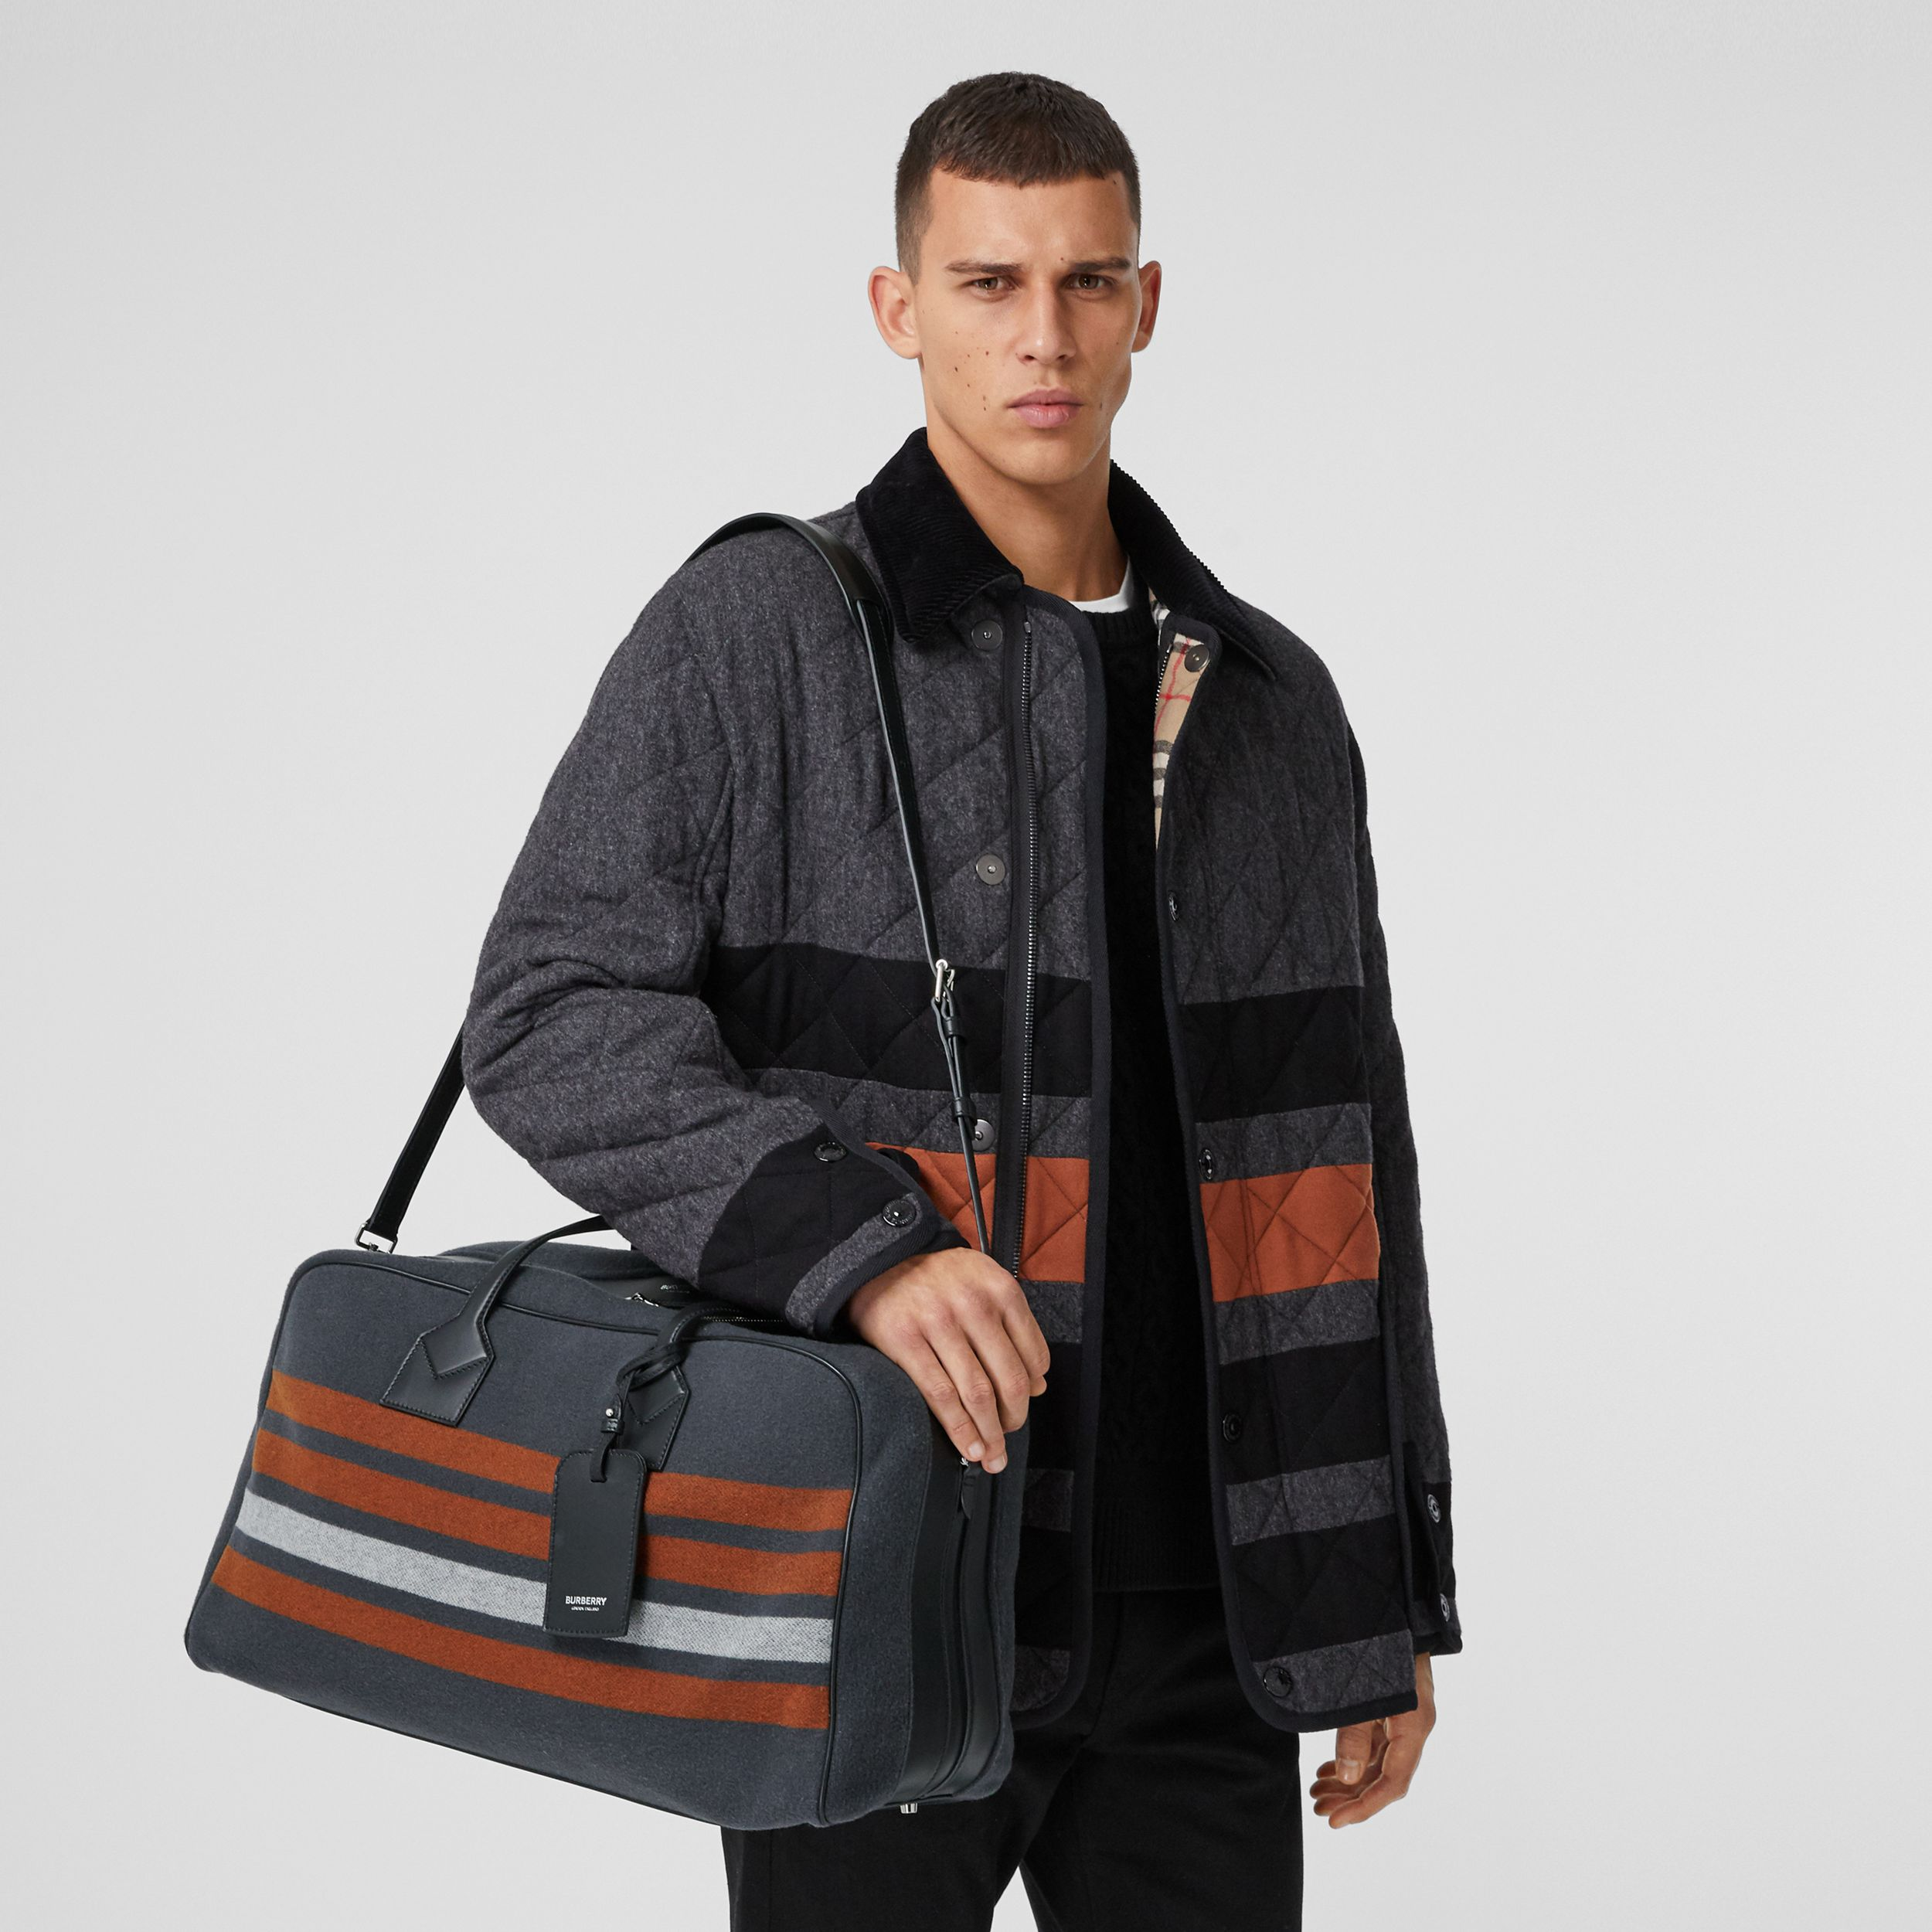 Striped Wool and Leather Cube Holdall in Mid Grey - Men | Burberry - 3